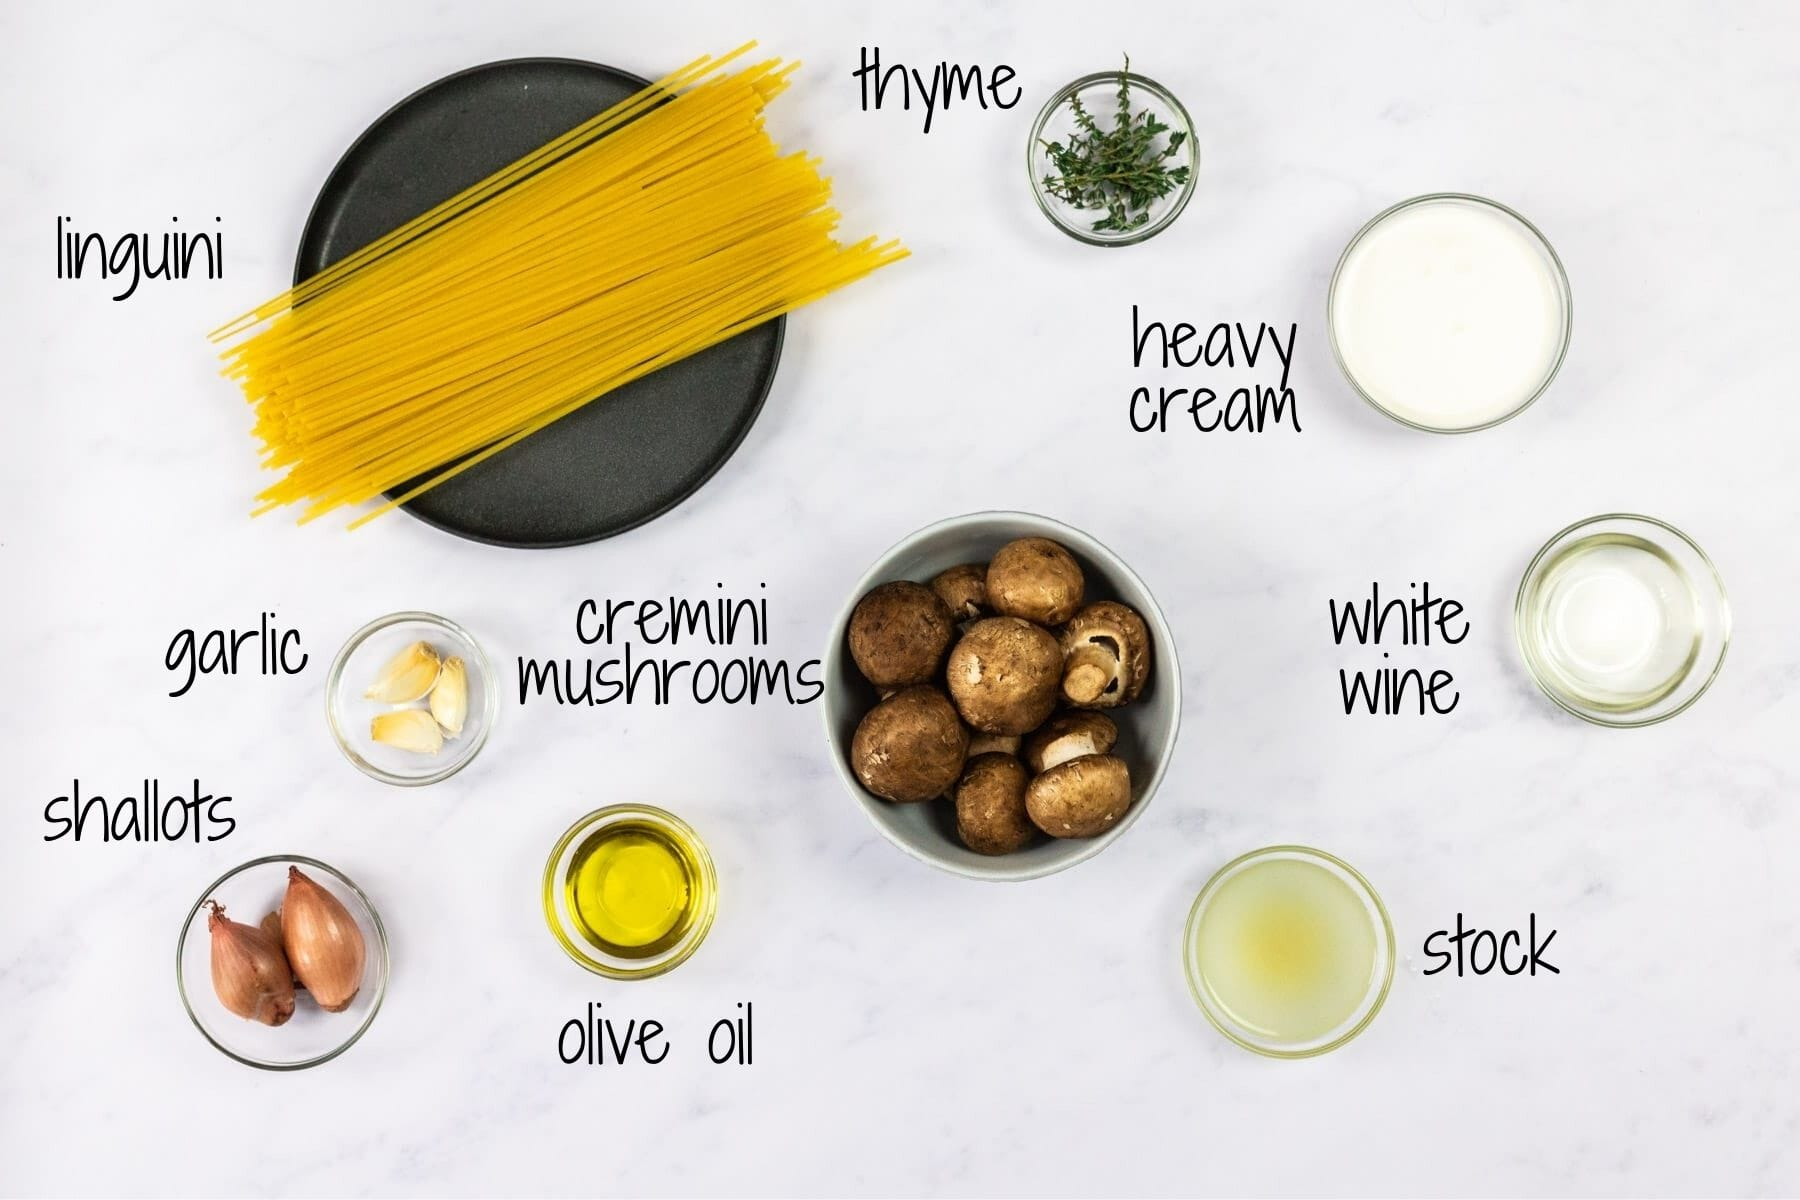 Ingredients for creamy mushroom pasta with text labels.